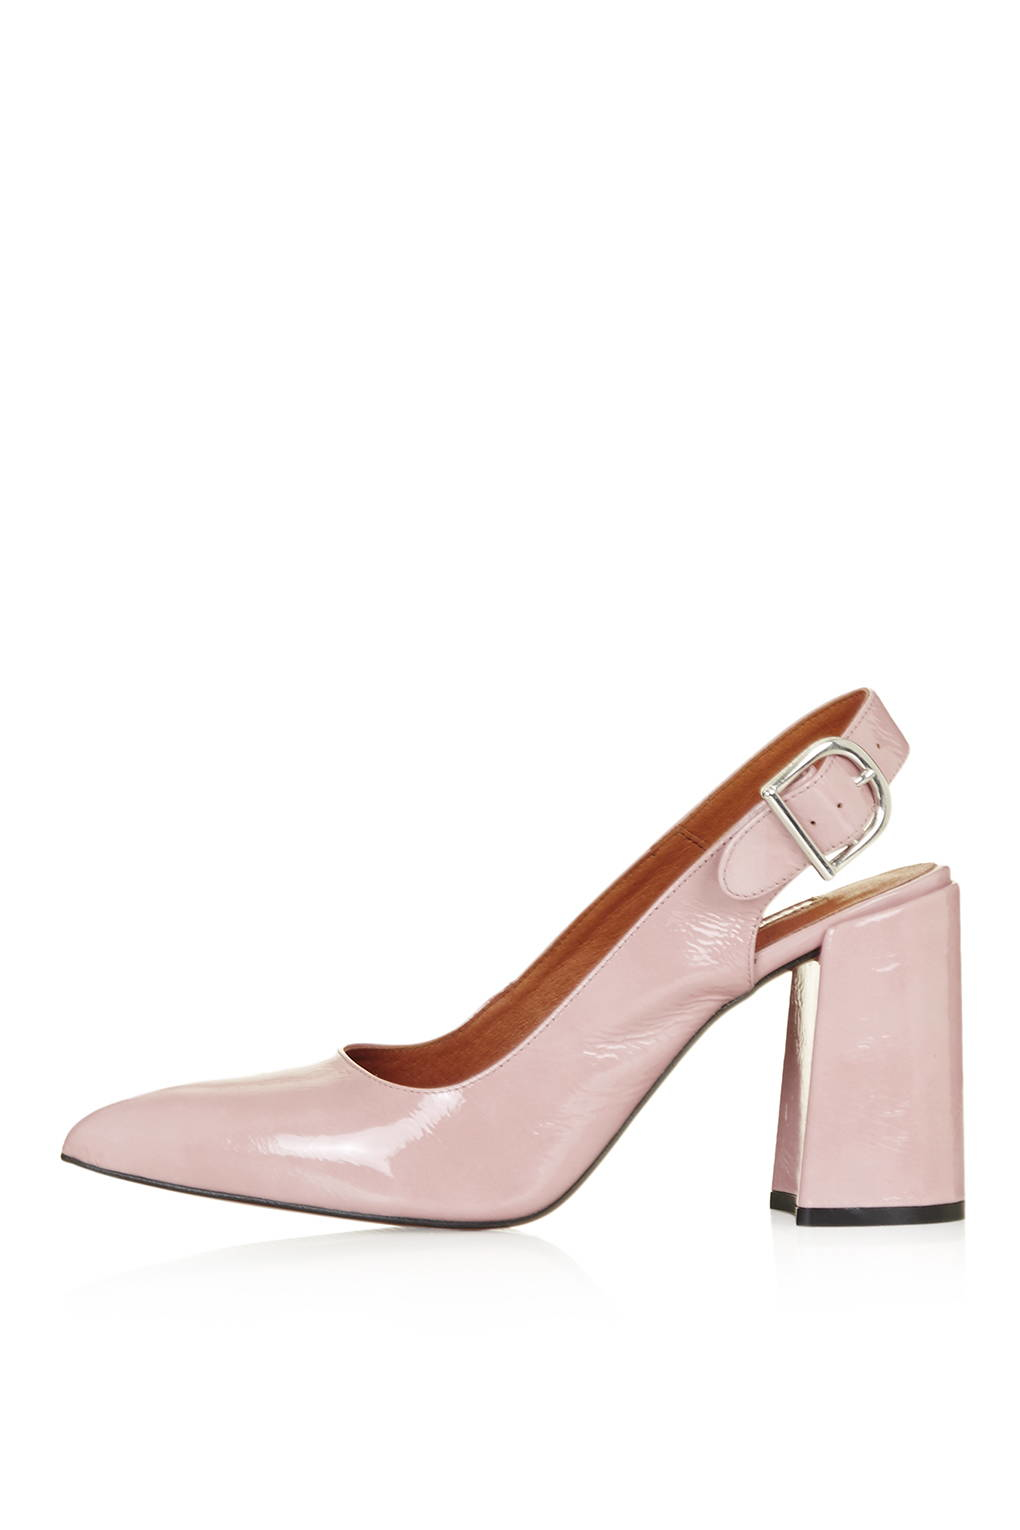 719f0e3ee32 Lyst - TOPSHOP Gramercy Slingback Shoes in Pink